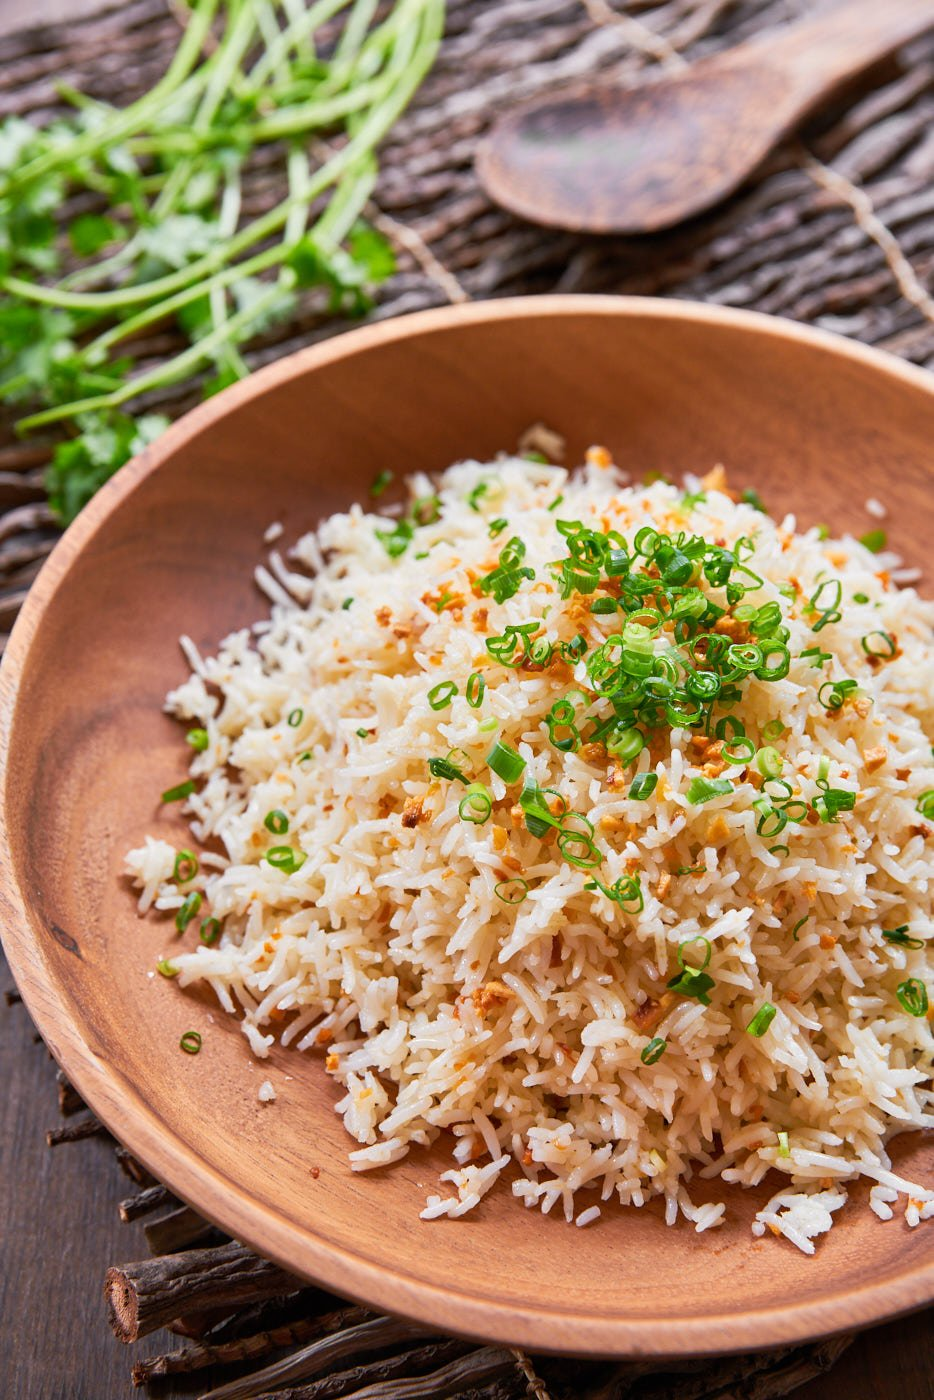 With just two ingredients, it doesn't get much simpler than this classic Filipino Sinangag (garlic fried rice). The perfect way to revive some day-old rice.